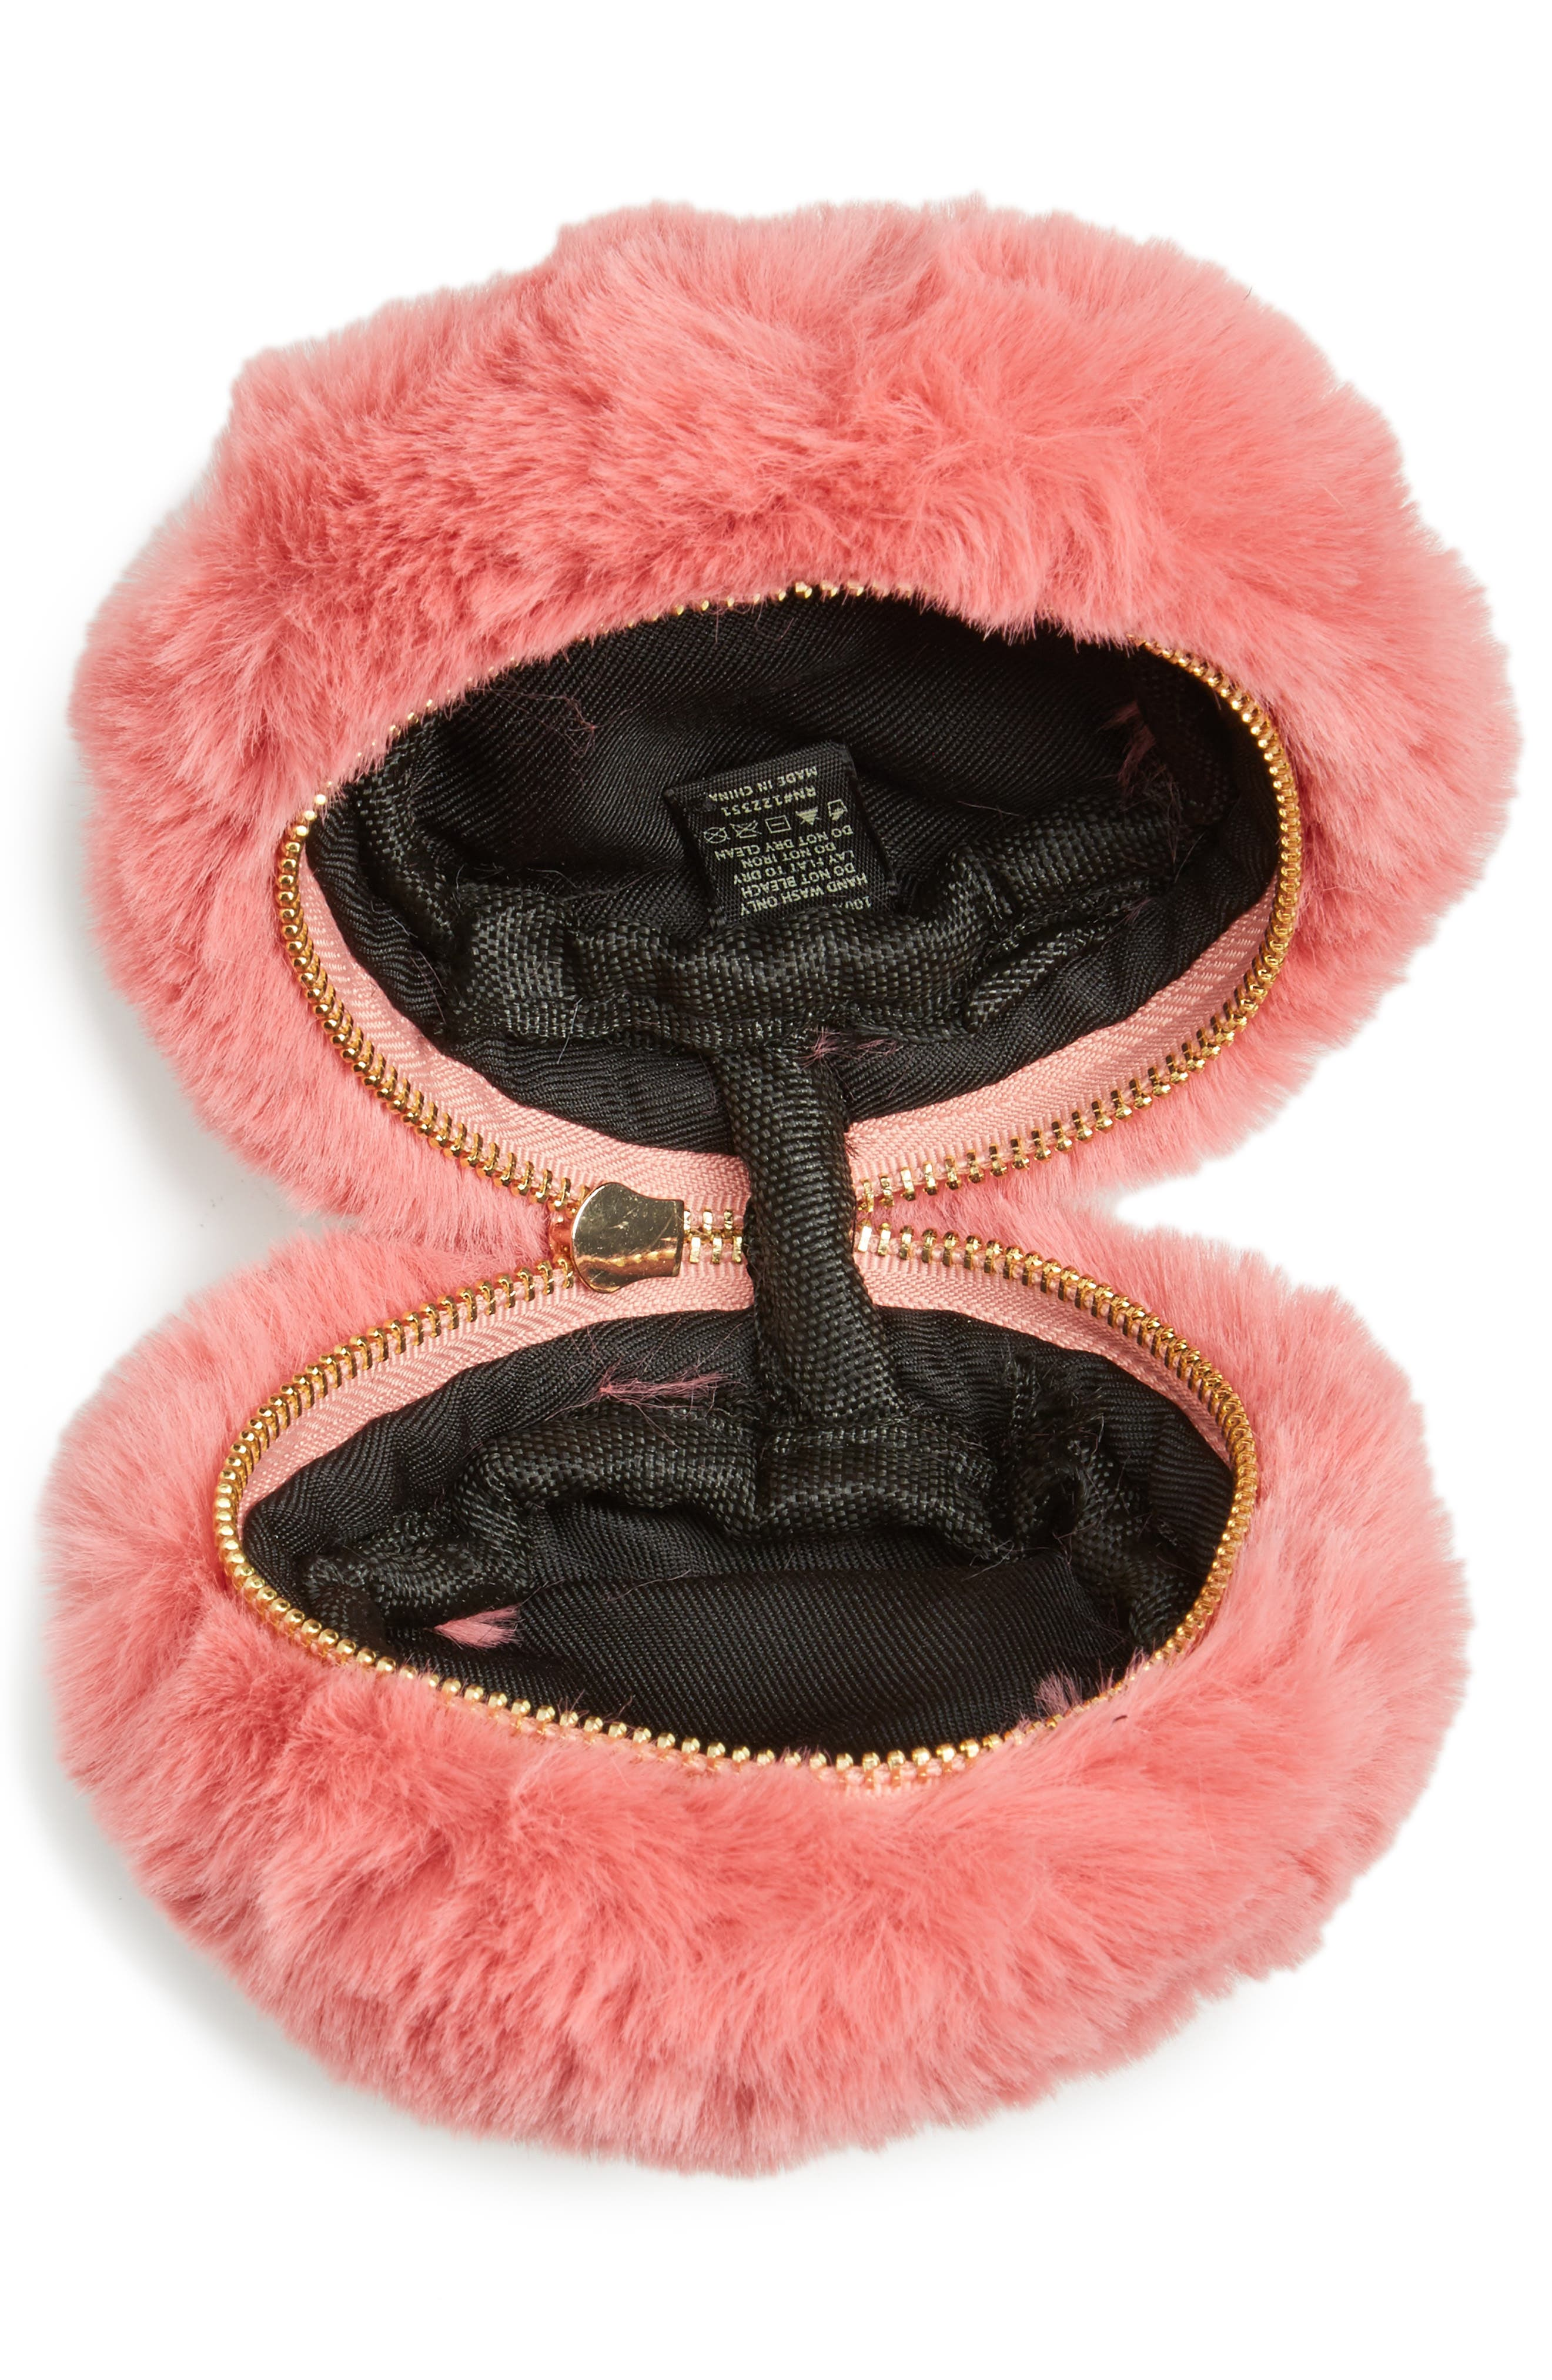 Macaron Faux Fur Wristlet,                             Alternate thumbnail 4, color,                             650